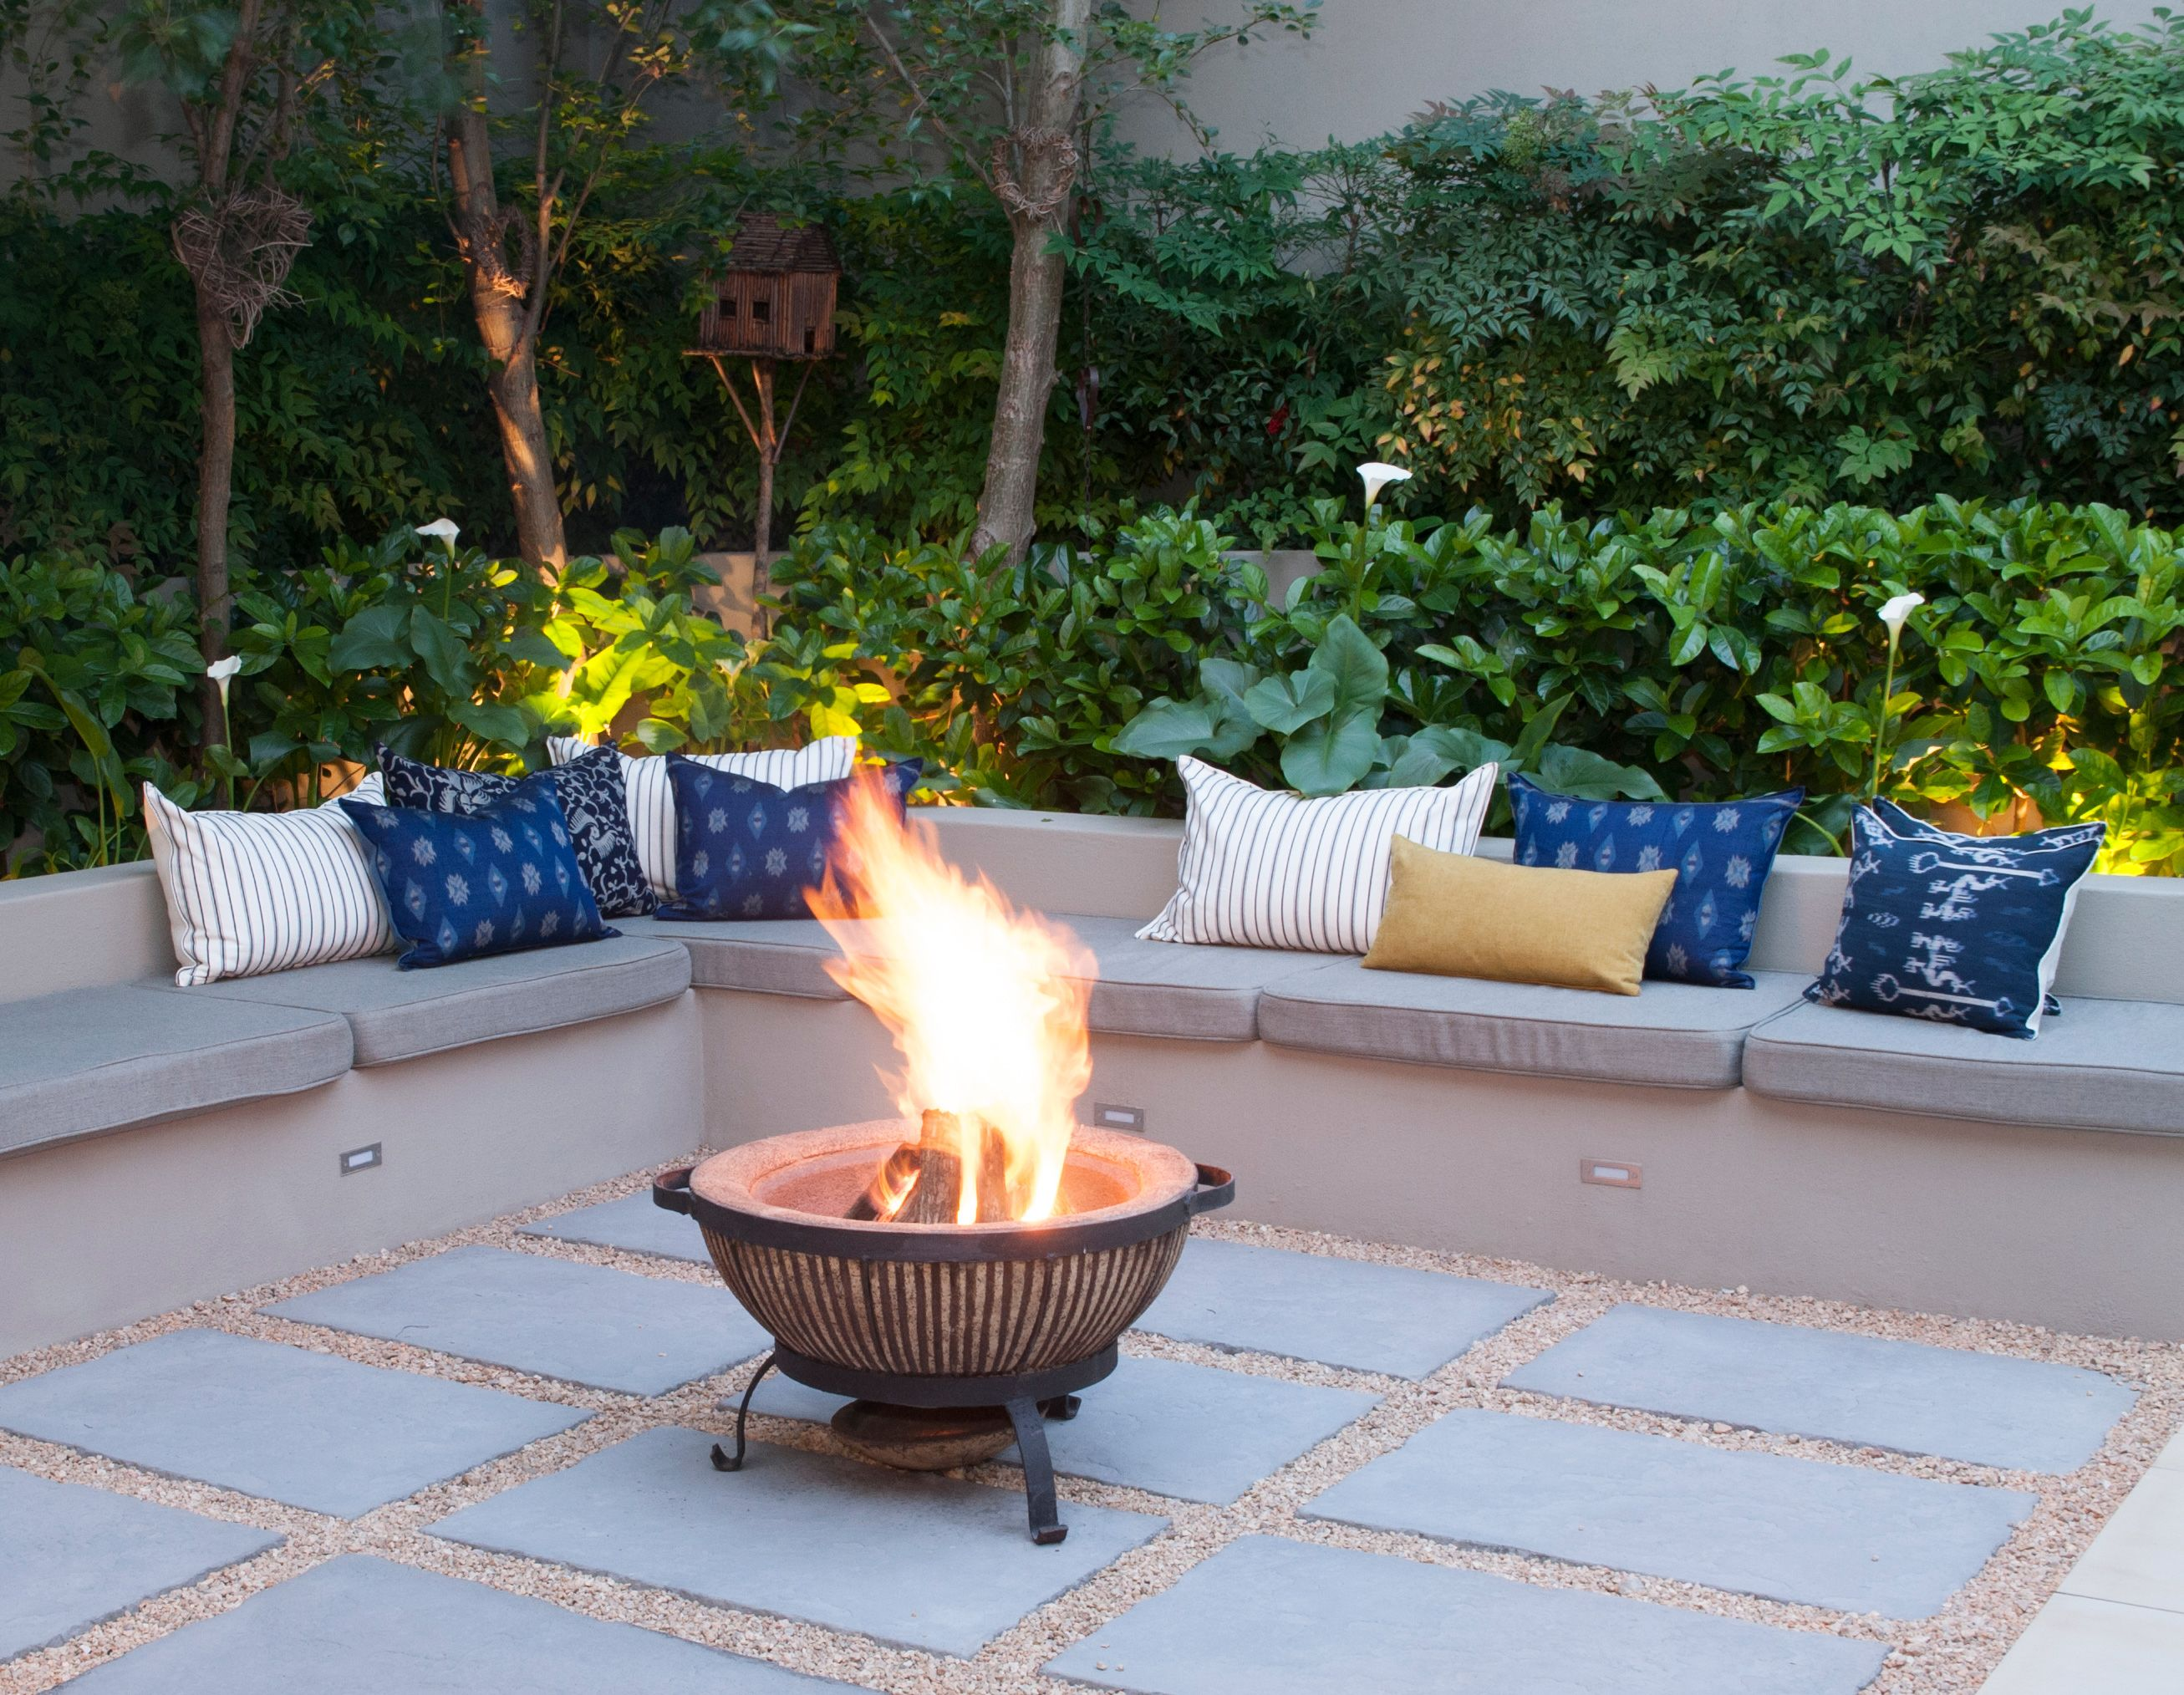 5 Inspiring firepits for outdoor entertaining | Fire pit ... on Boma Ideas For Small Gardens id=97360